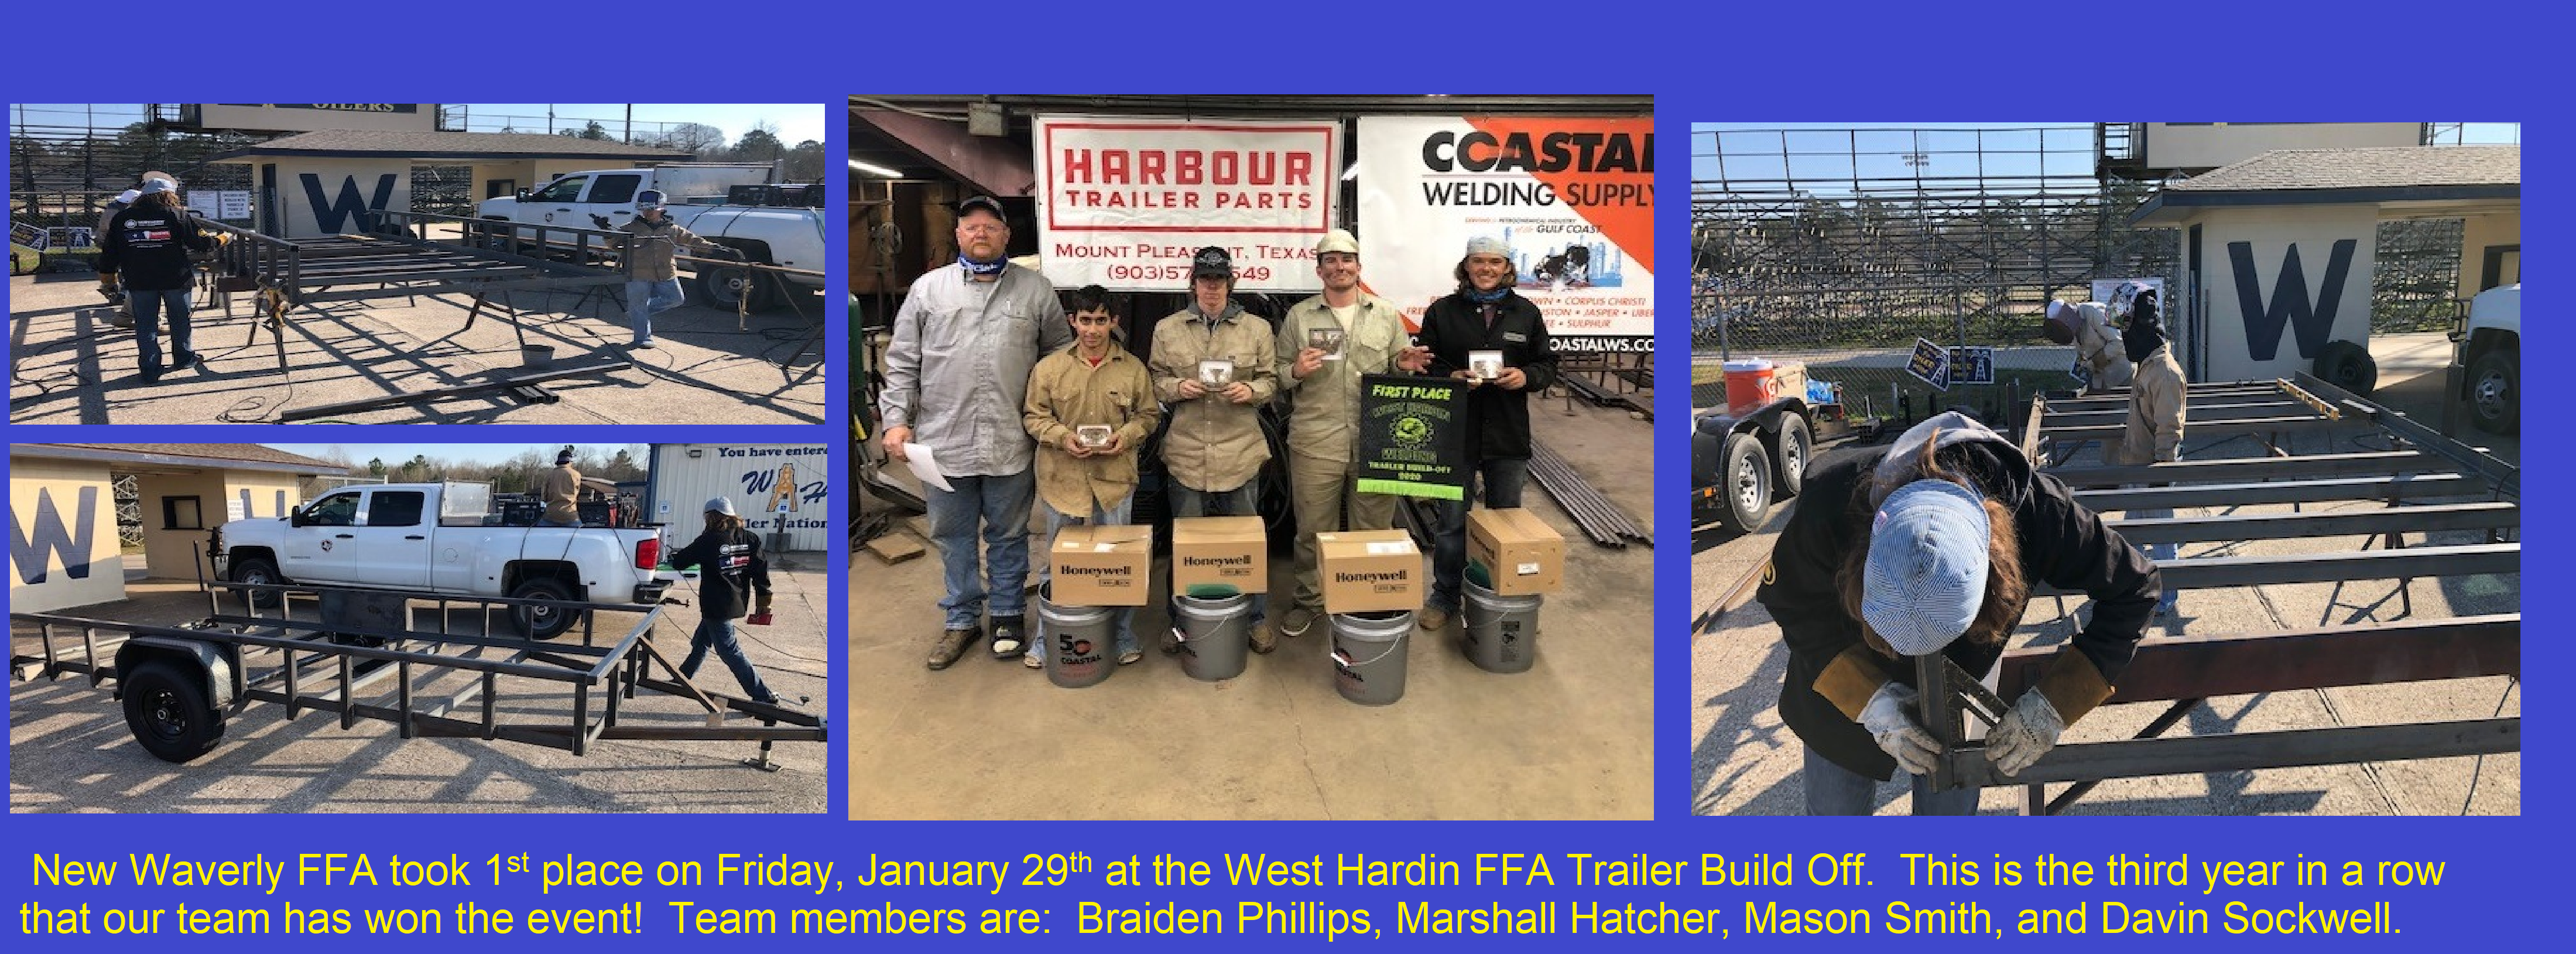 NWISD FFA wins West Hardin Trailer Build-Off 3 Years in a Row